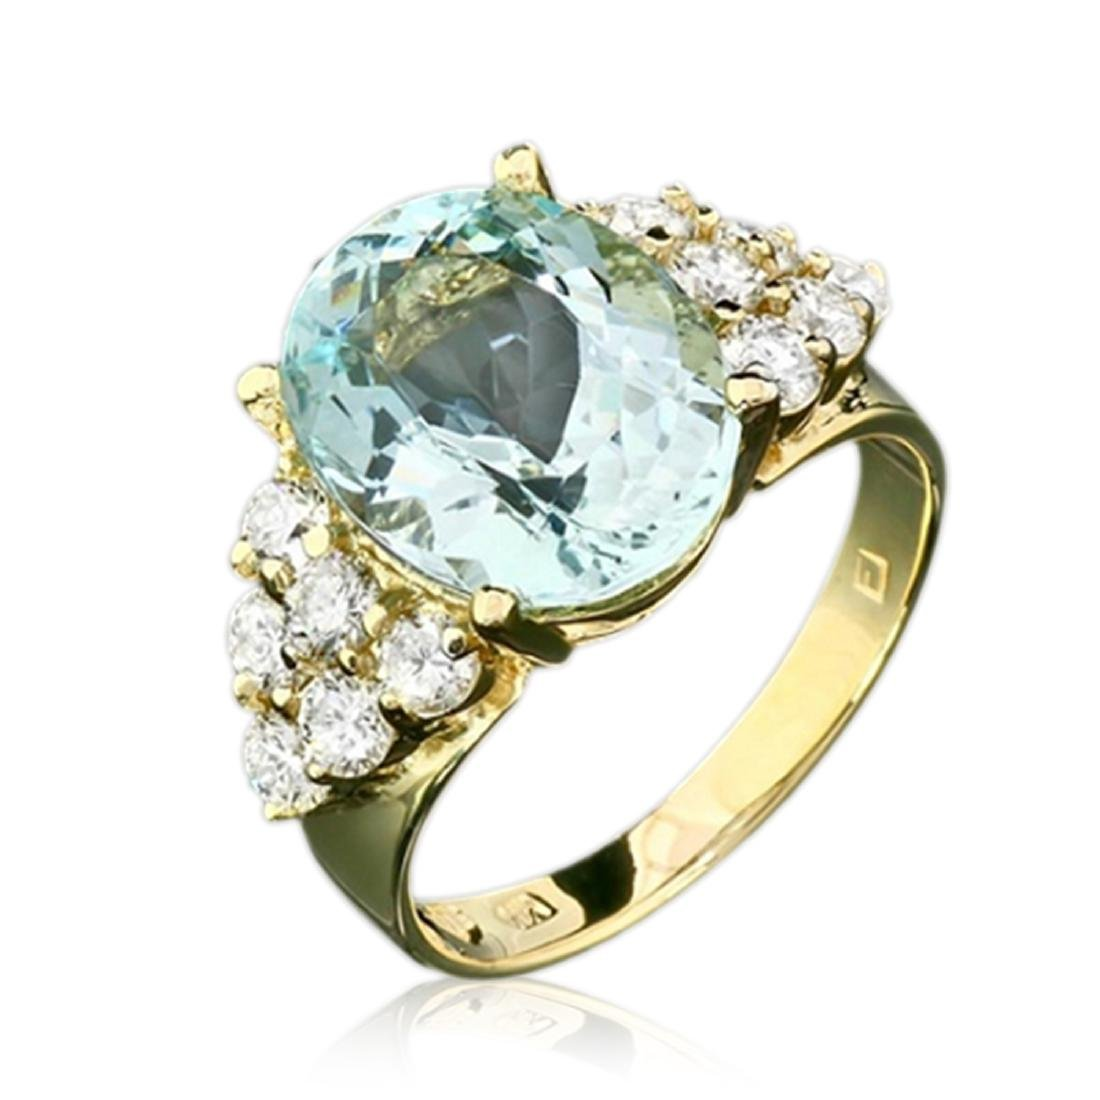 1.10 Carat Natural Aquamarine 18K Solid Yellow Gold